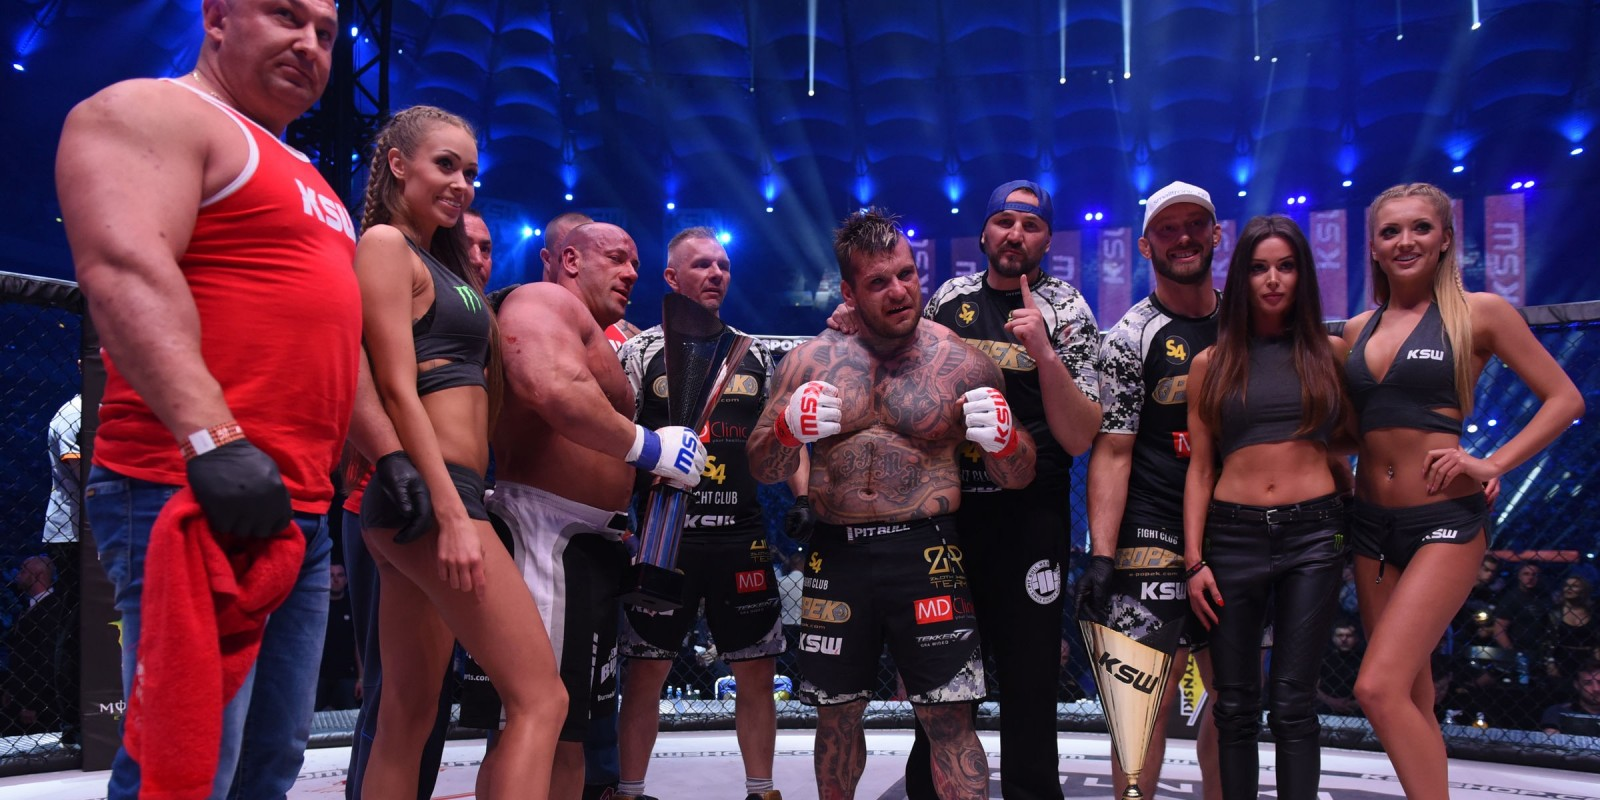 KSW39 Colosseum MMA gala at National Stadium in Warsaw - celebration after one of the fights